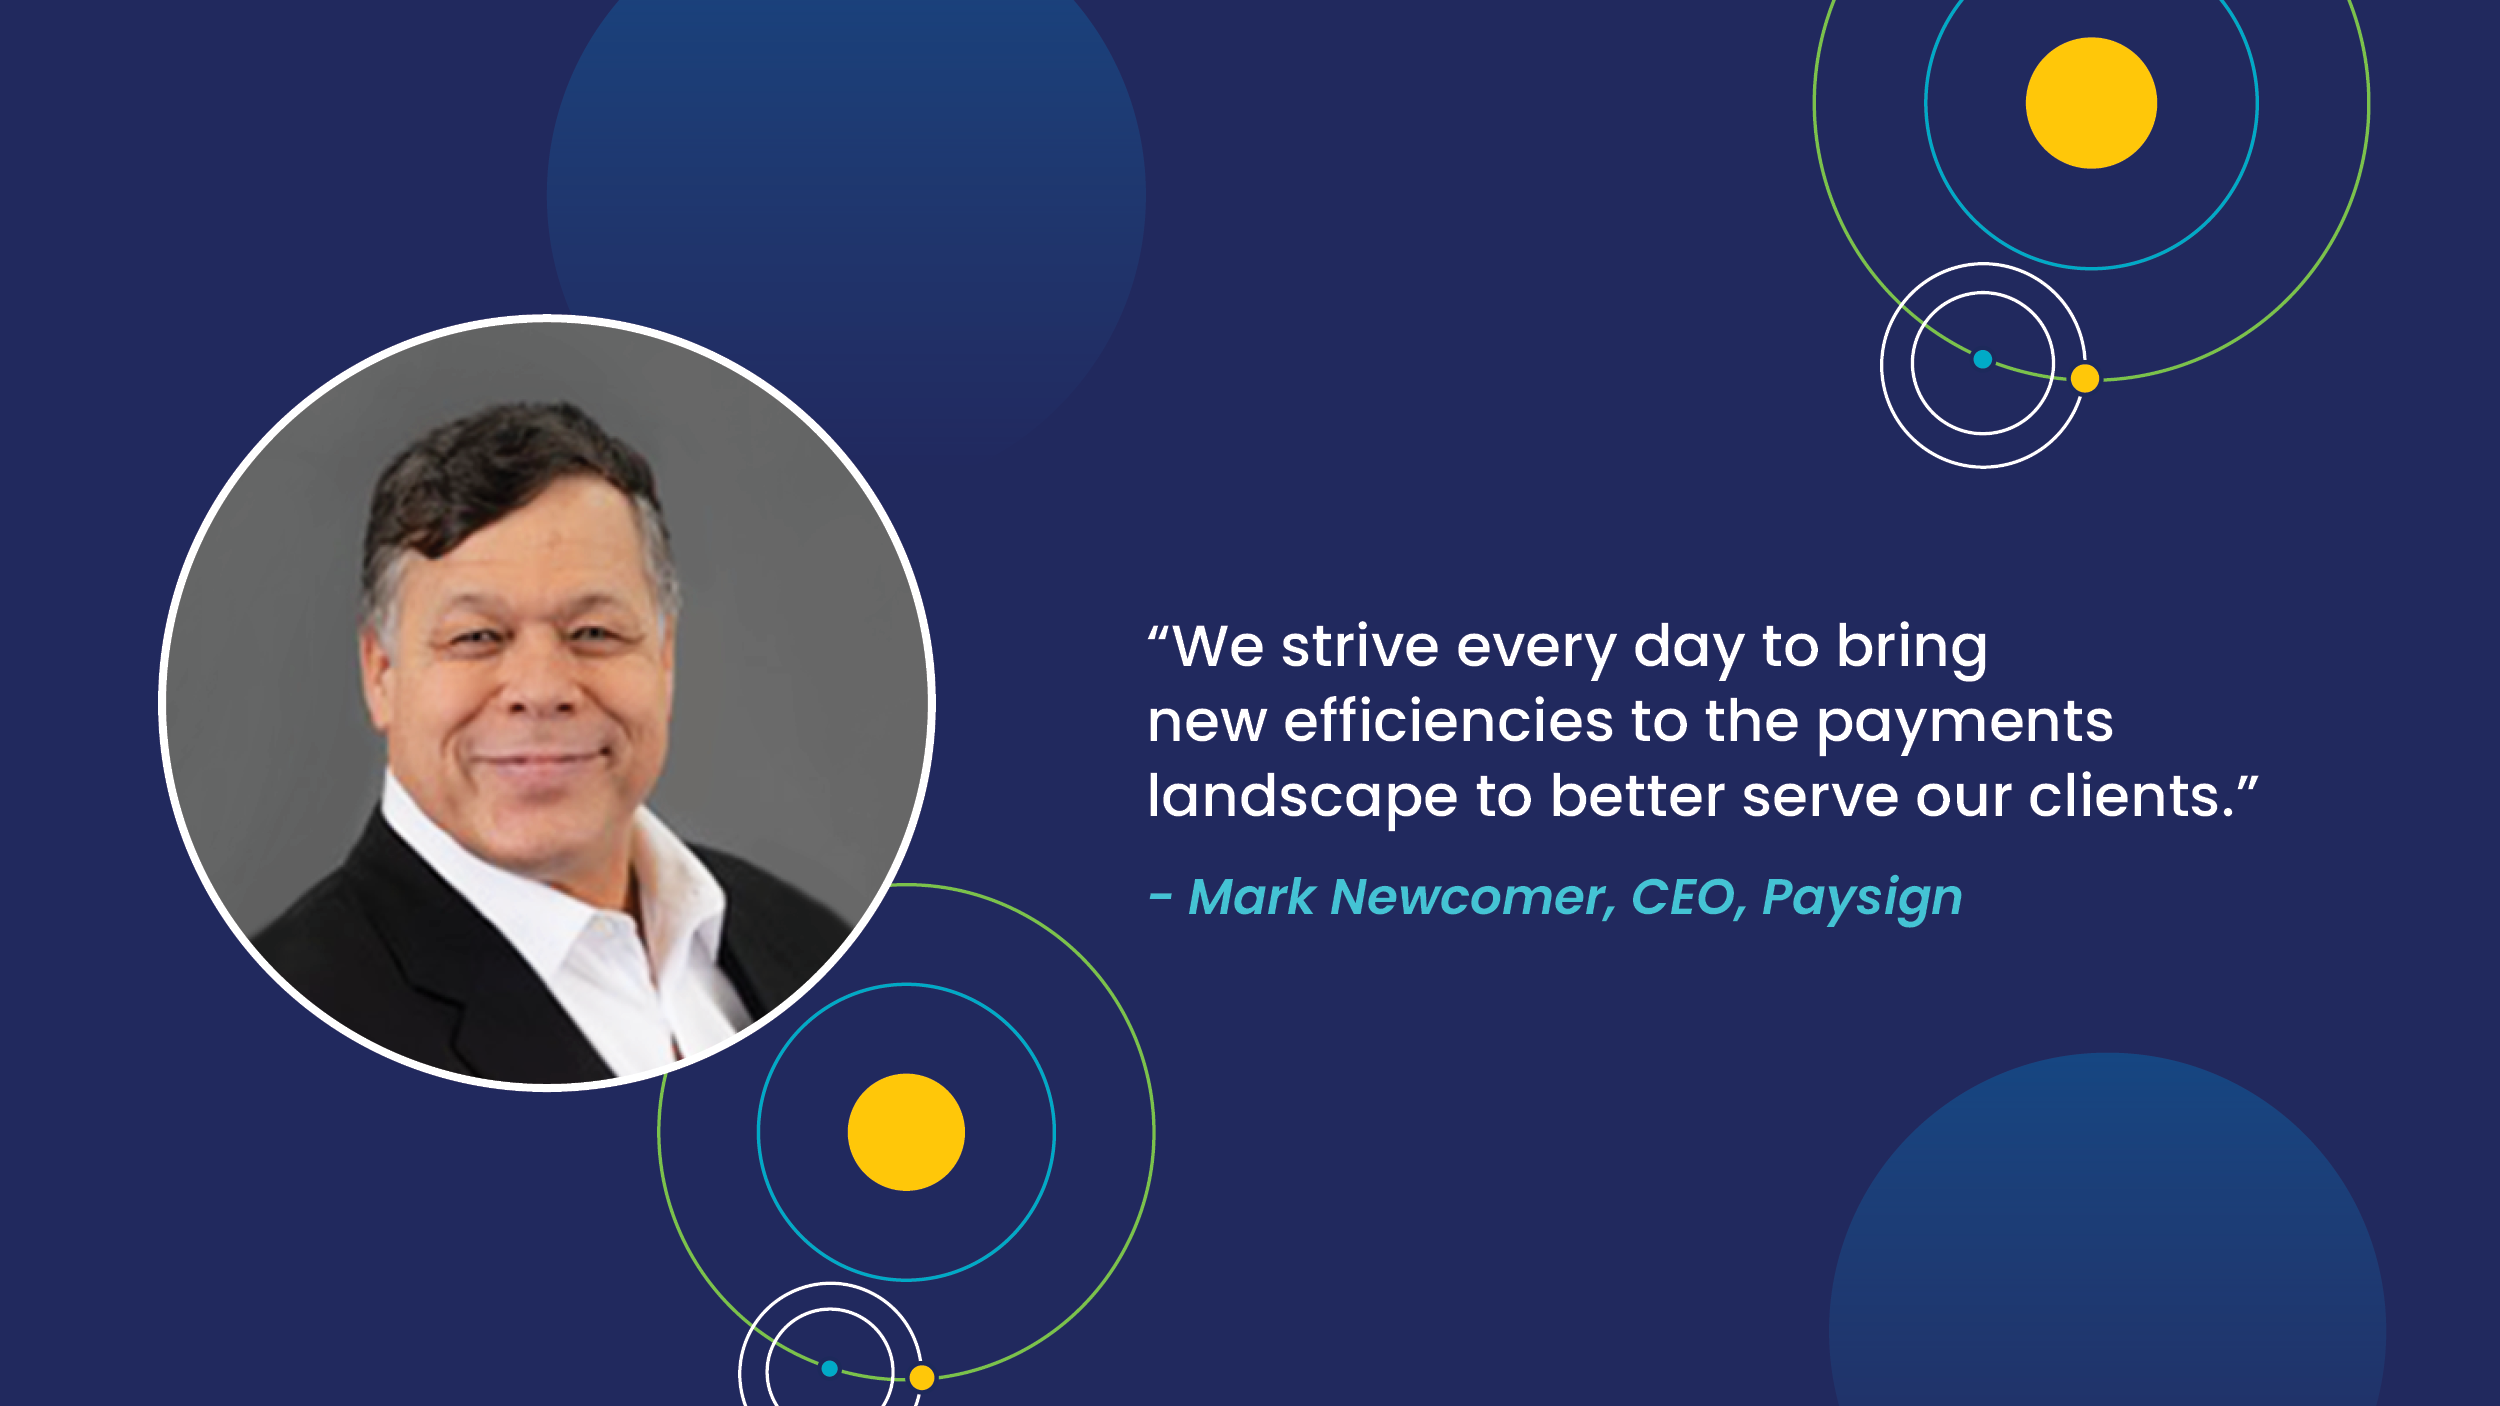 Mark Newcomer, Paysign CEO